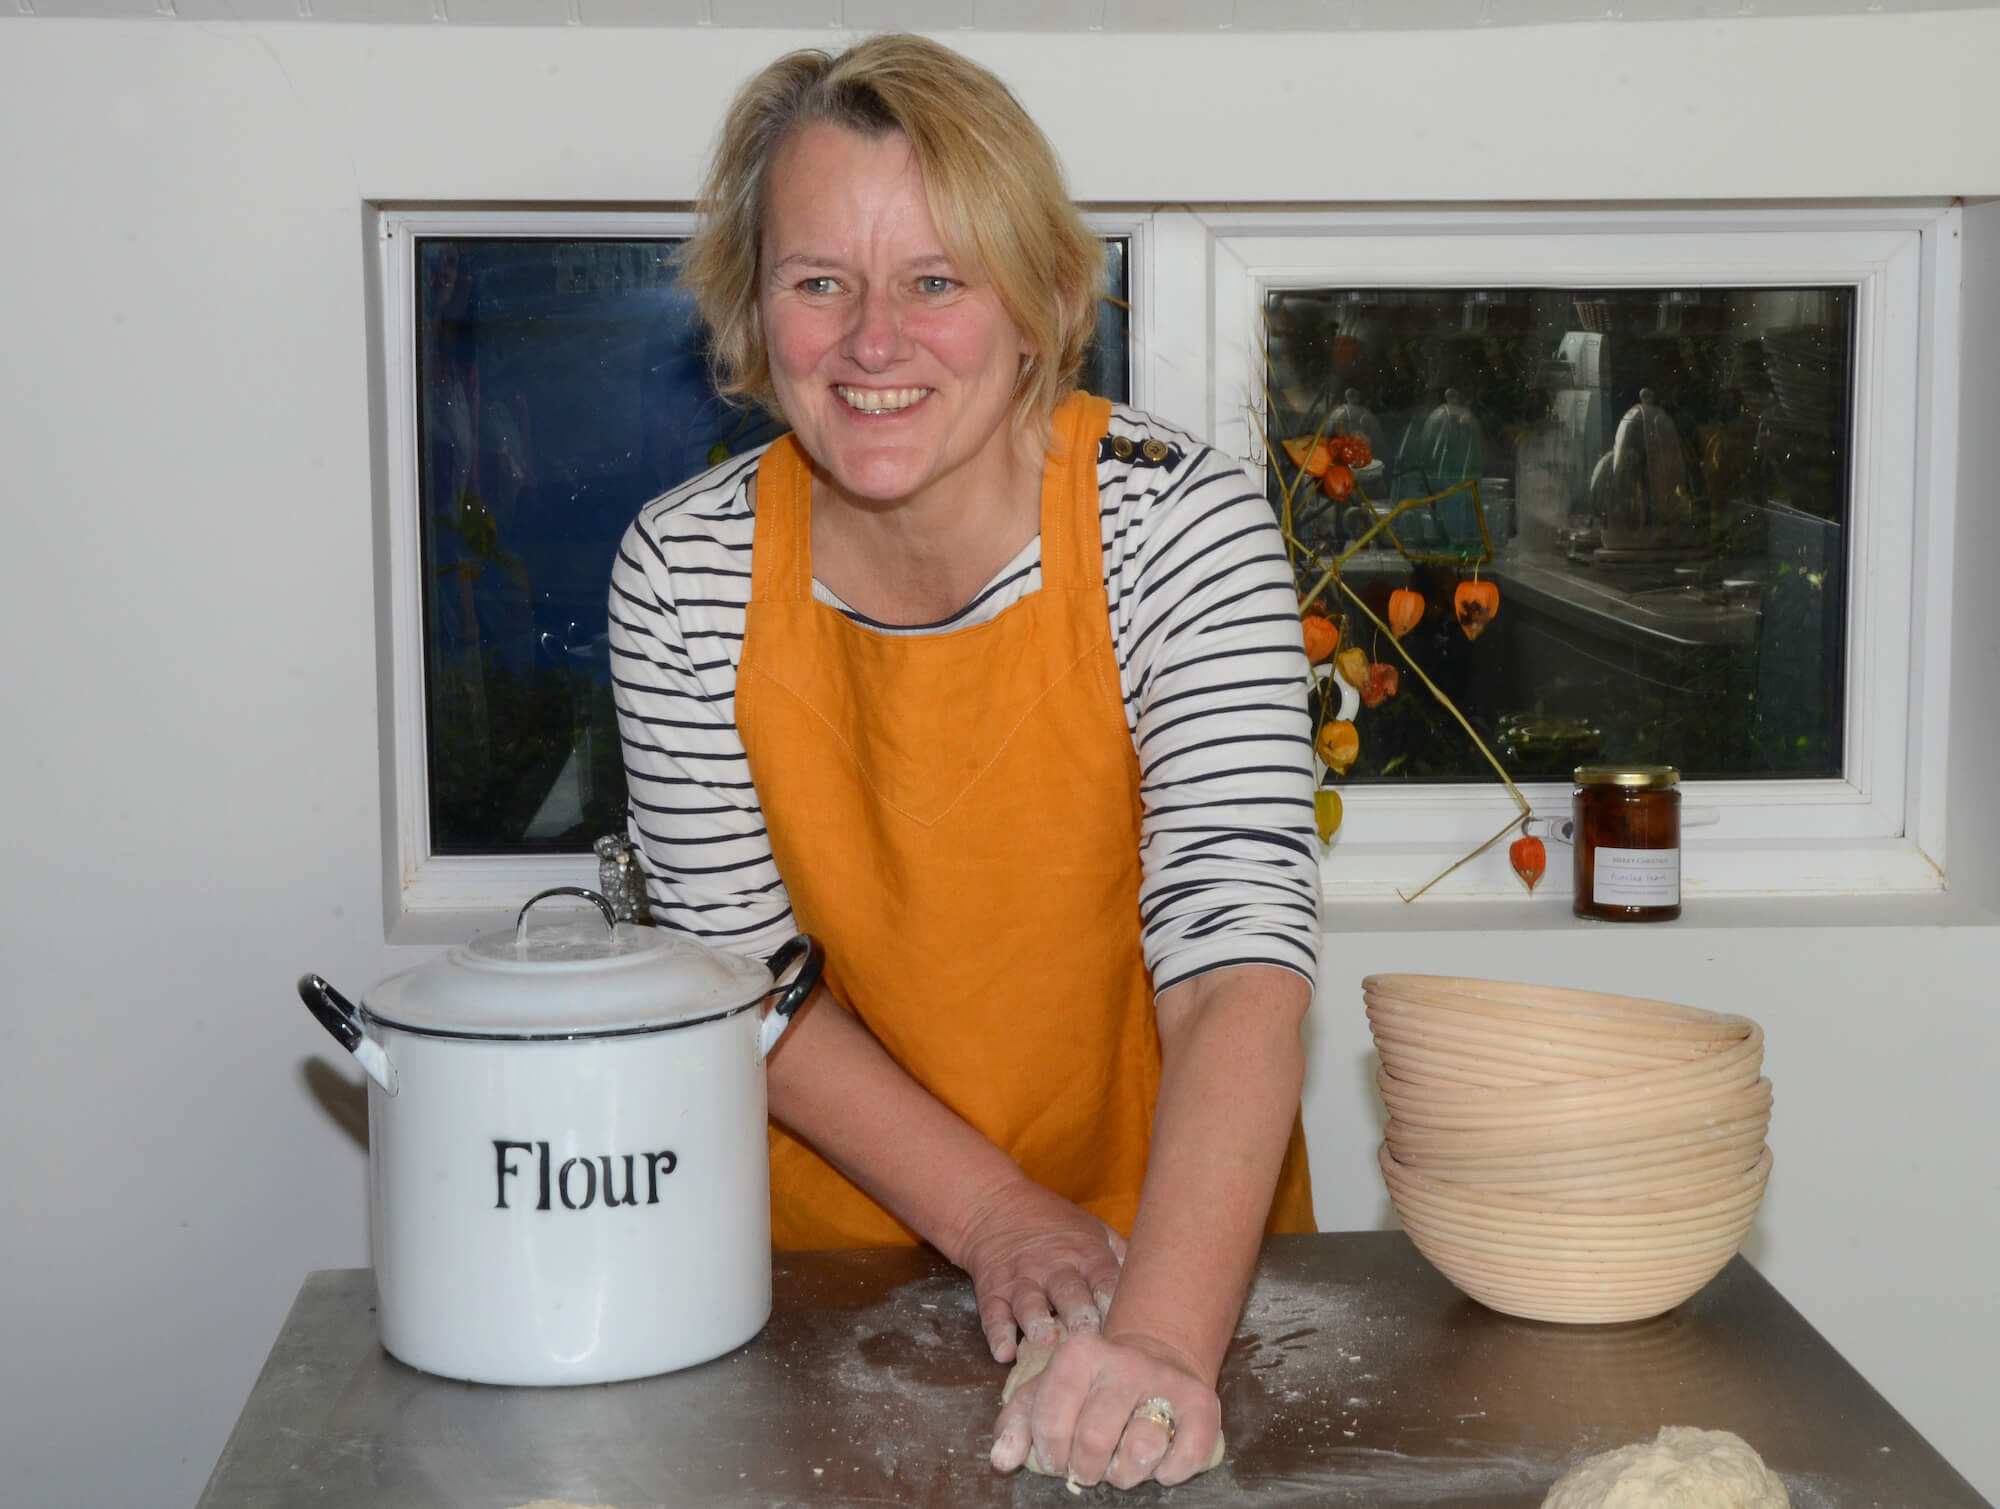 Join Ruth's kitchen workshop and become